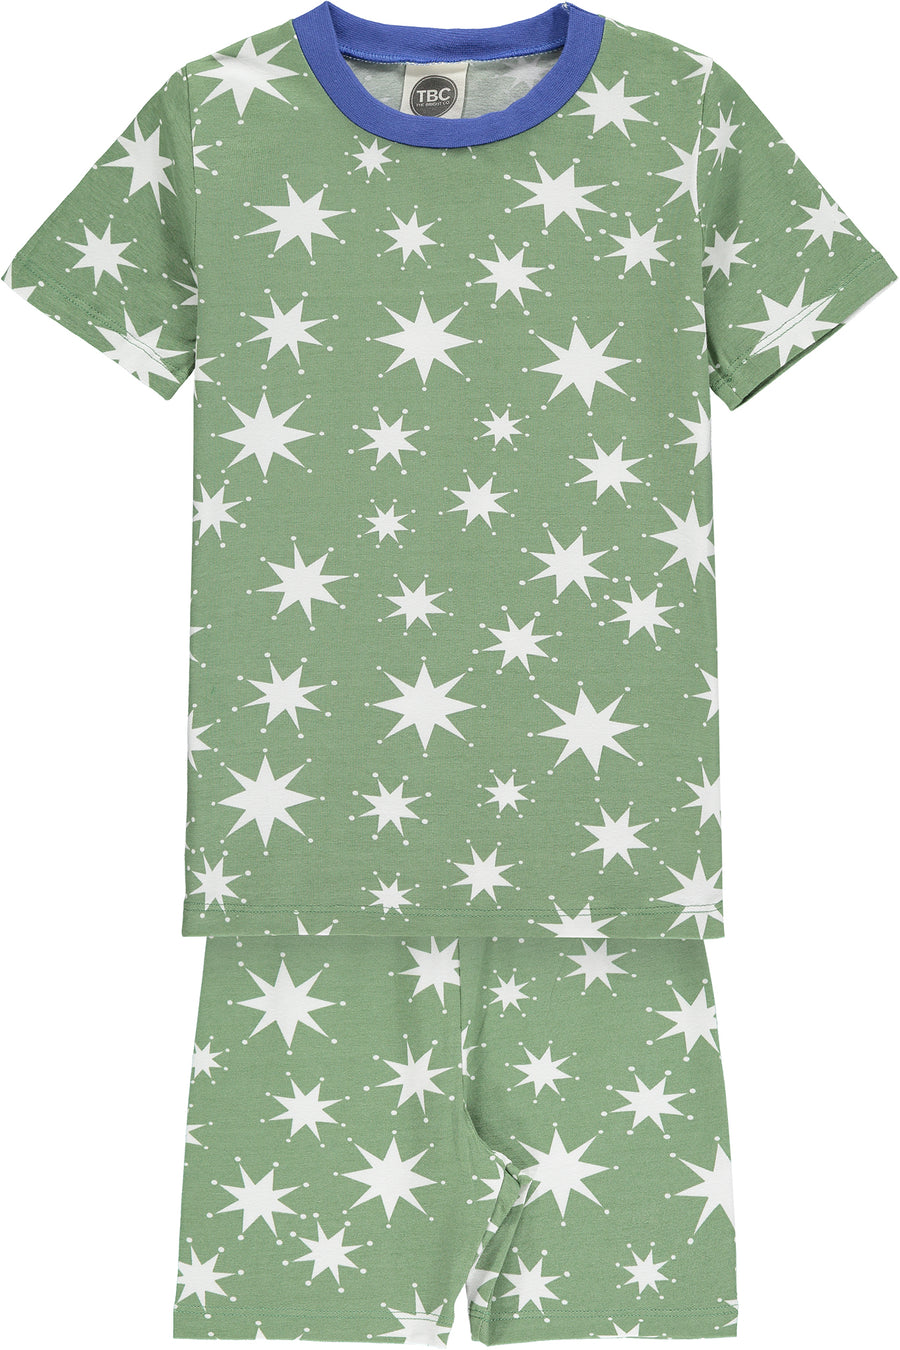 SHORT JYMS - STAR PRINT HEDGE GREEN